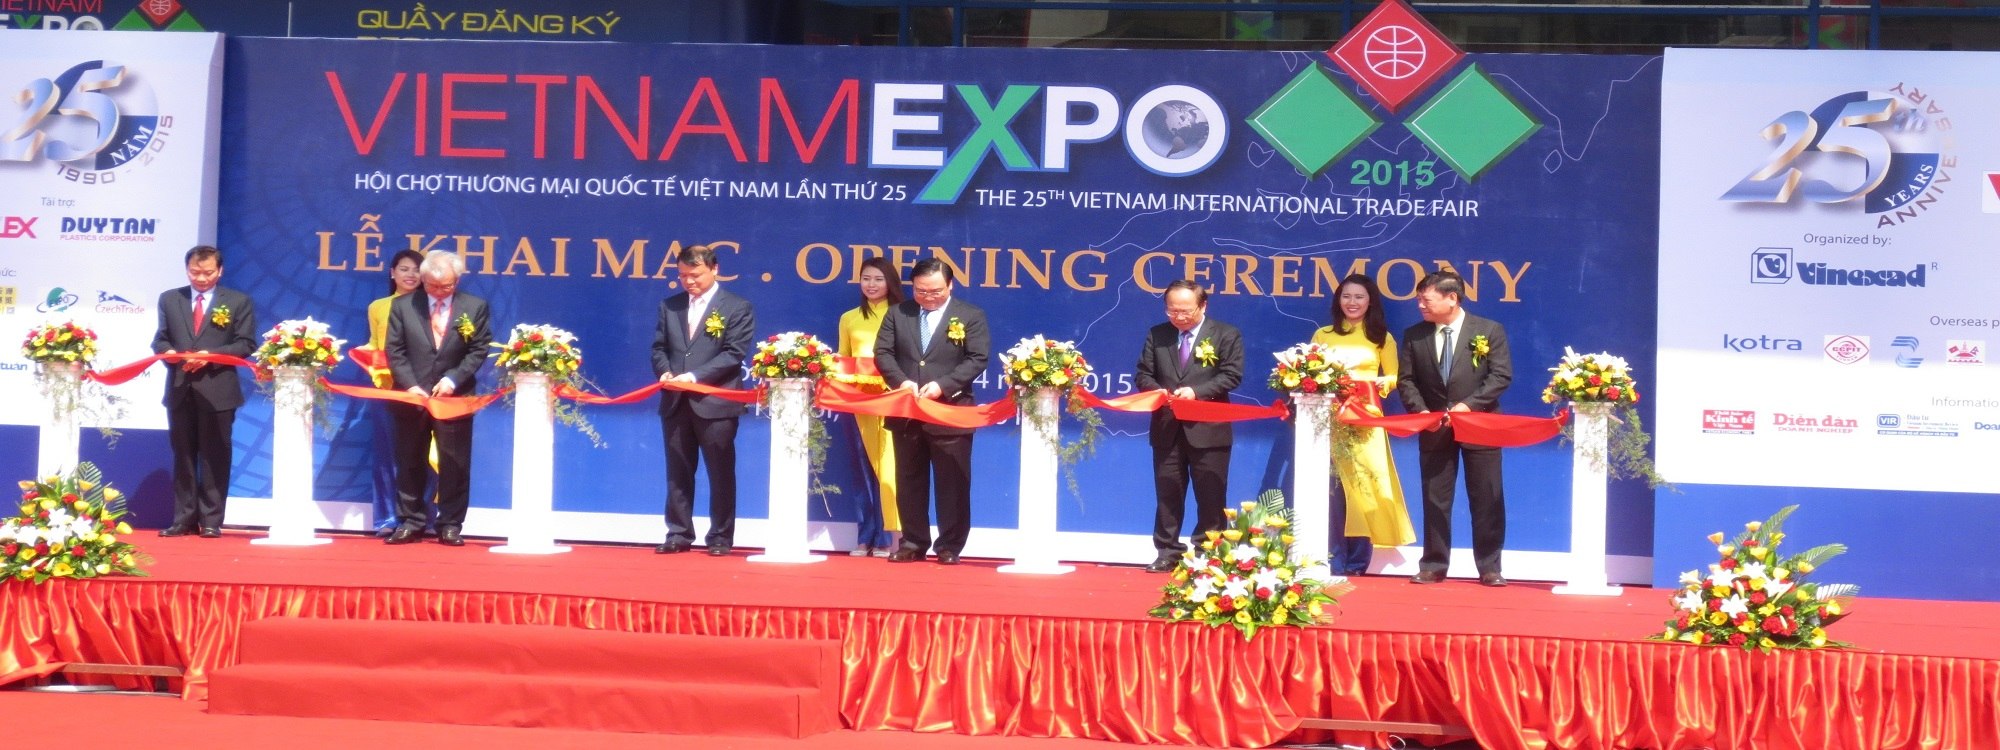 How to attend tradefairs in Vietnam